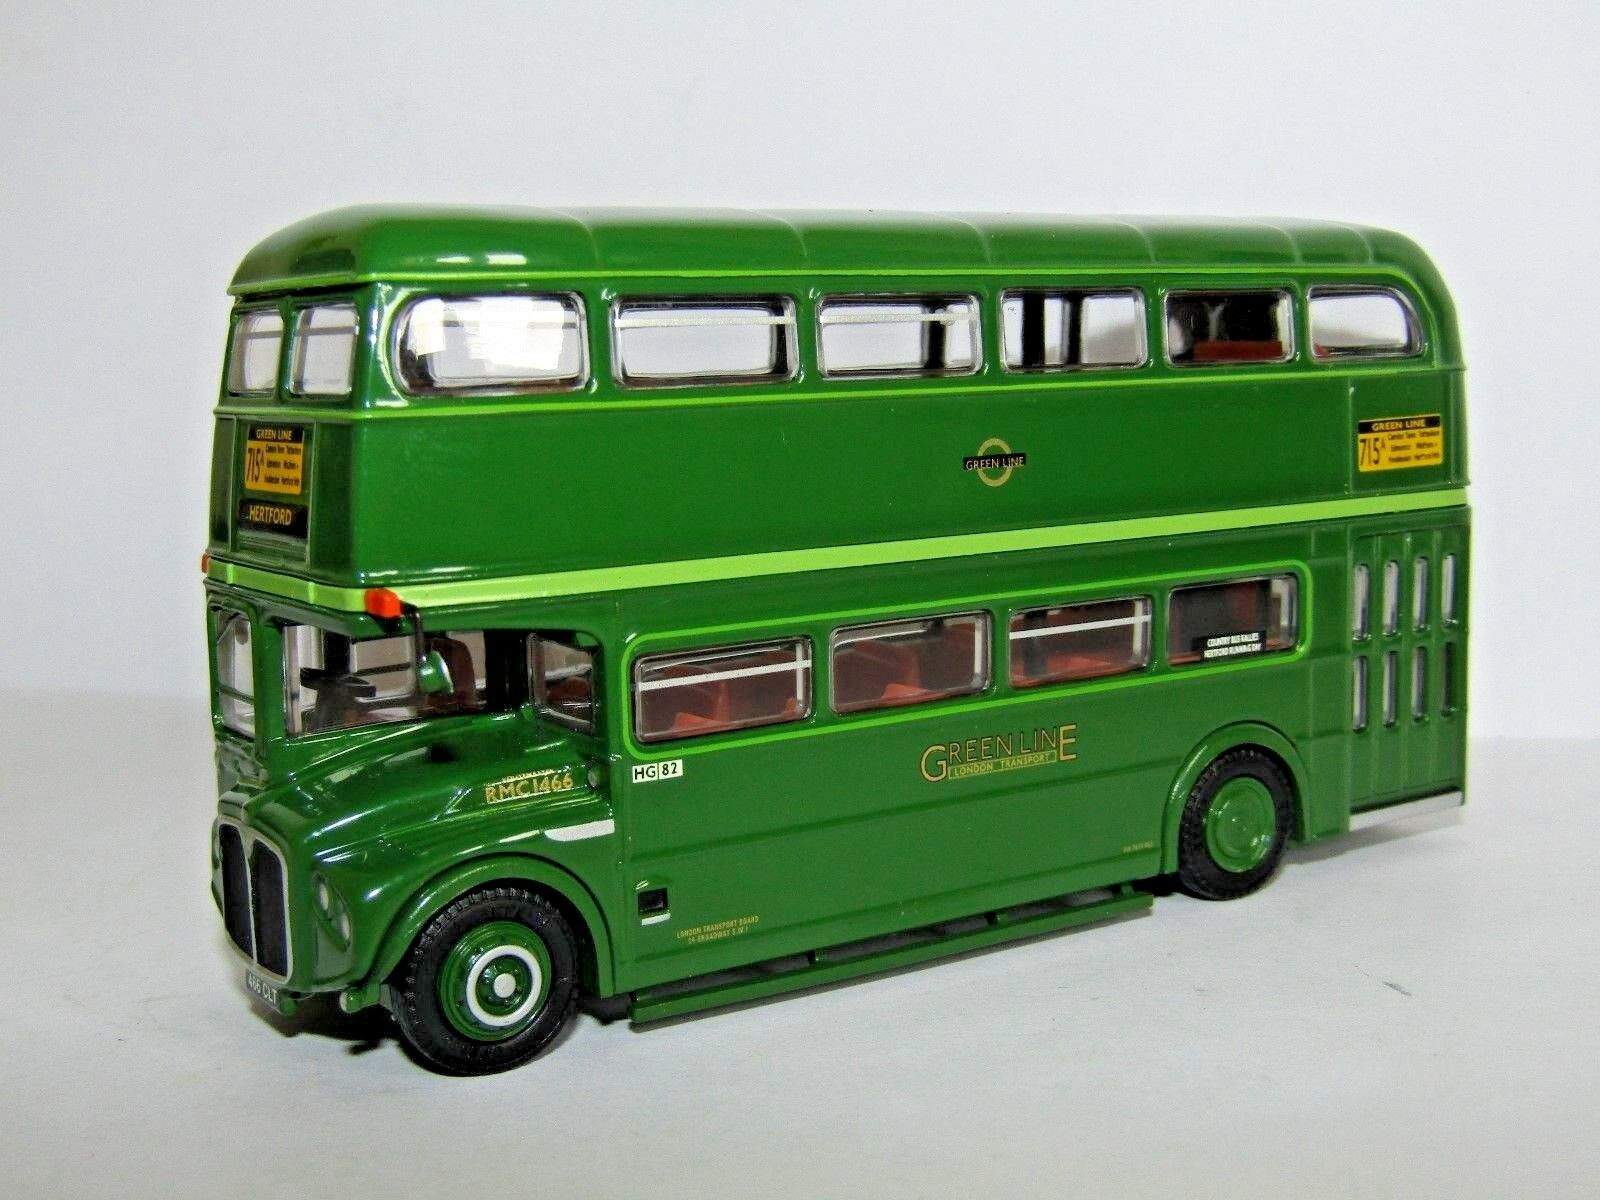 EFE RMC ROUTEMASTER GREEN LINE ROUTE 715A HERTFORD 2007 1 76 HG07 LBRT CODE 3